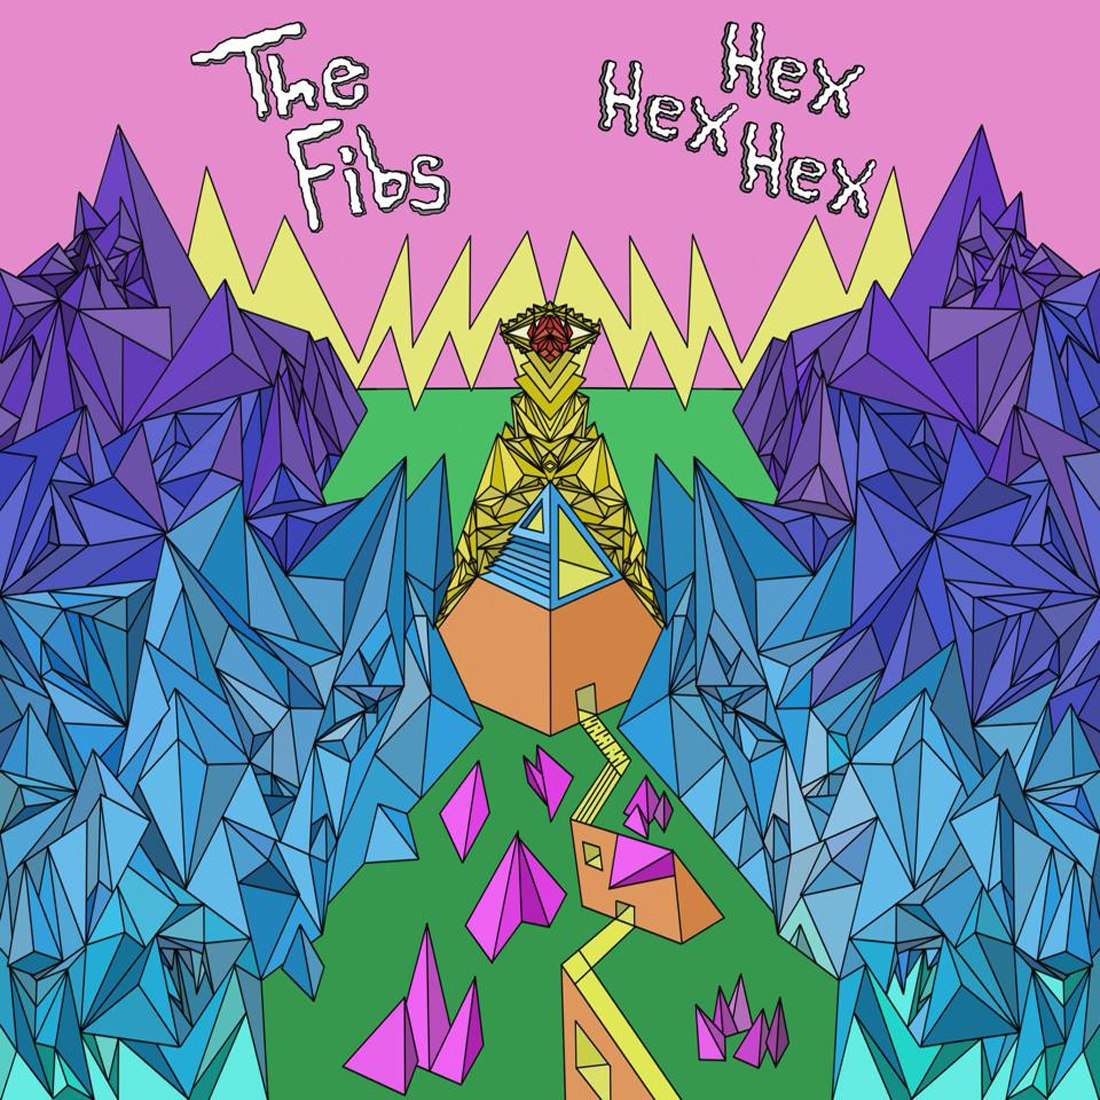 With artwork by Cody Soape, The Fibs' recently released debut album, Hex Hex Hex, is bipolar.